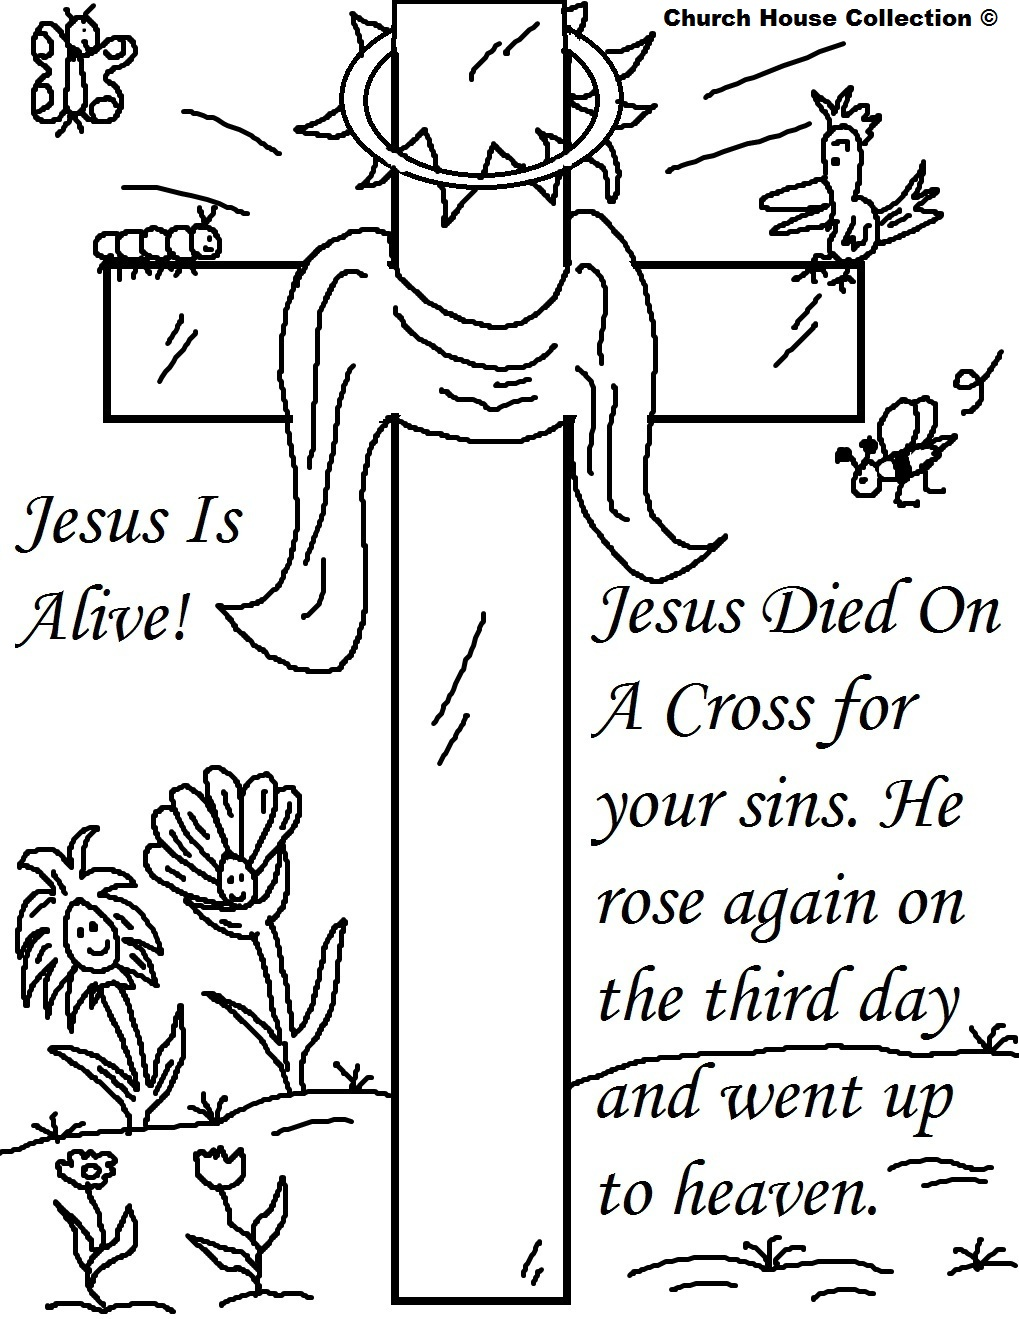 Printable Christian Easter Coloring Sheets : 25 Religious Easter Coloring Pages Free Easter Activity Printables